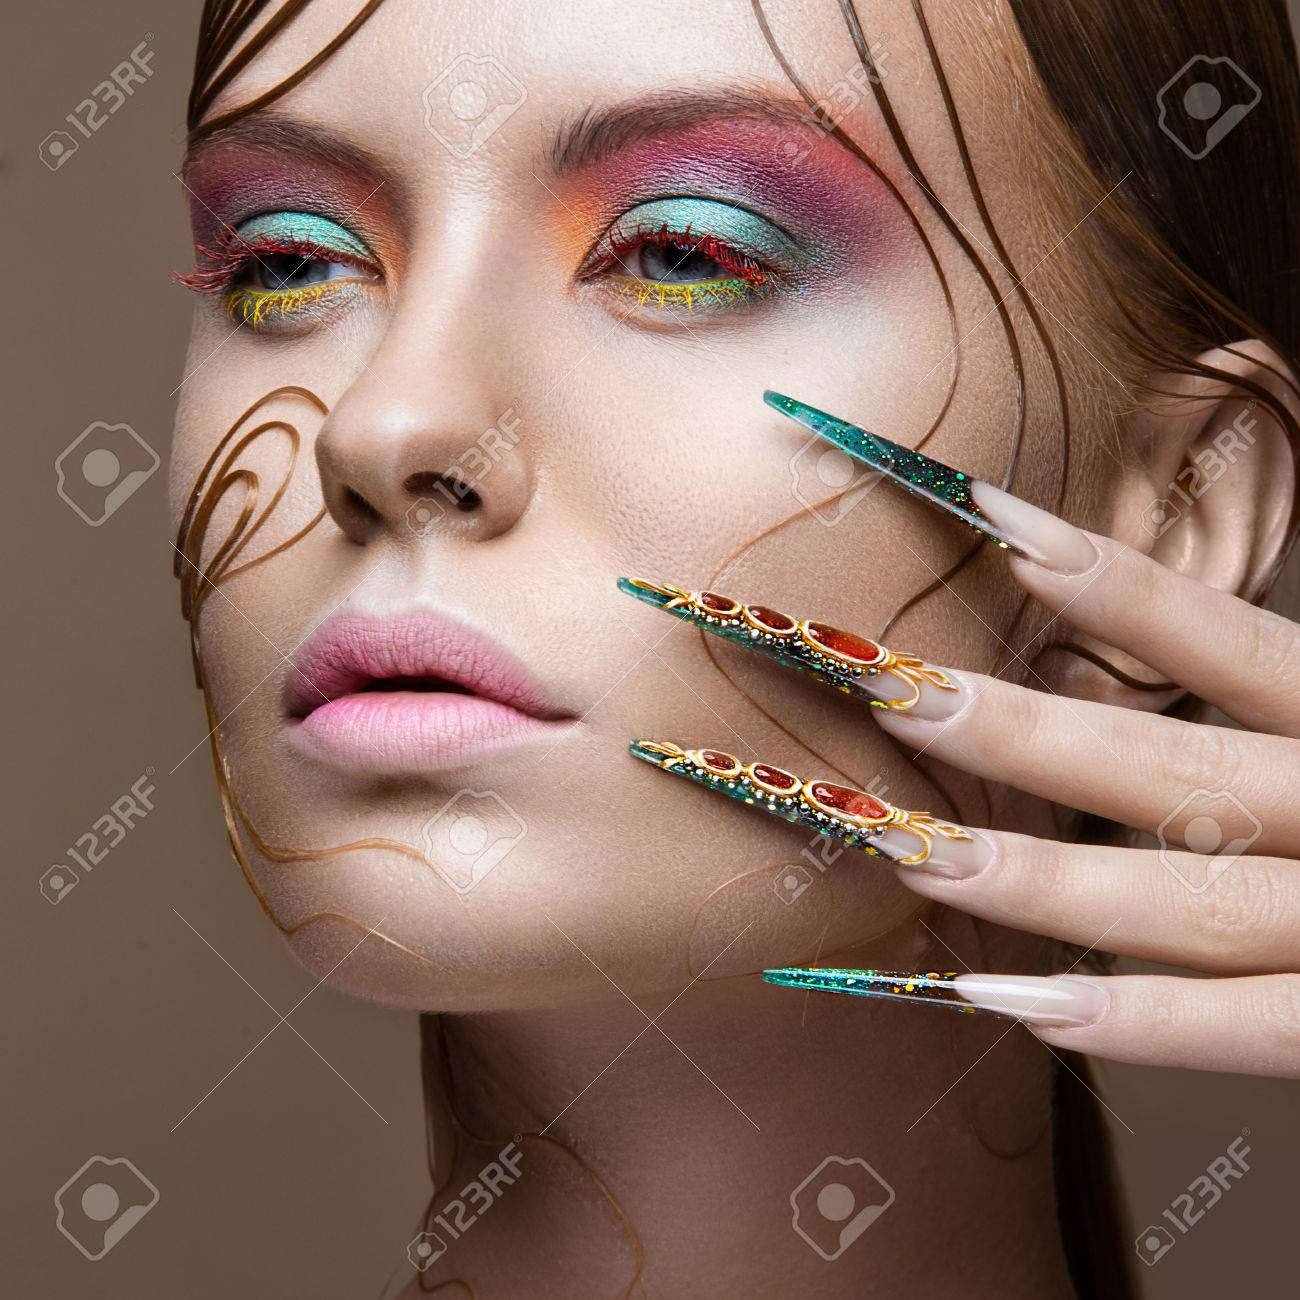 Beautiful girl with bright fashion make-up, creative hairstyle, long nails. Design manicure. Beauty face. Picture taken in the studio. - 45415627